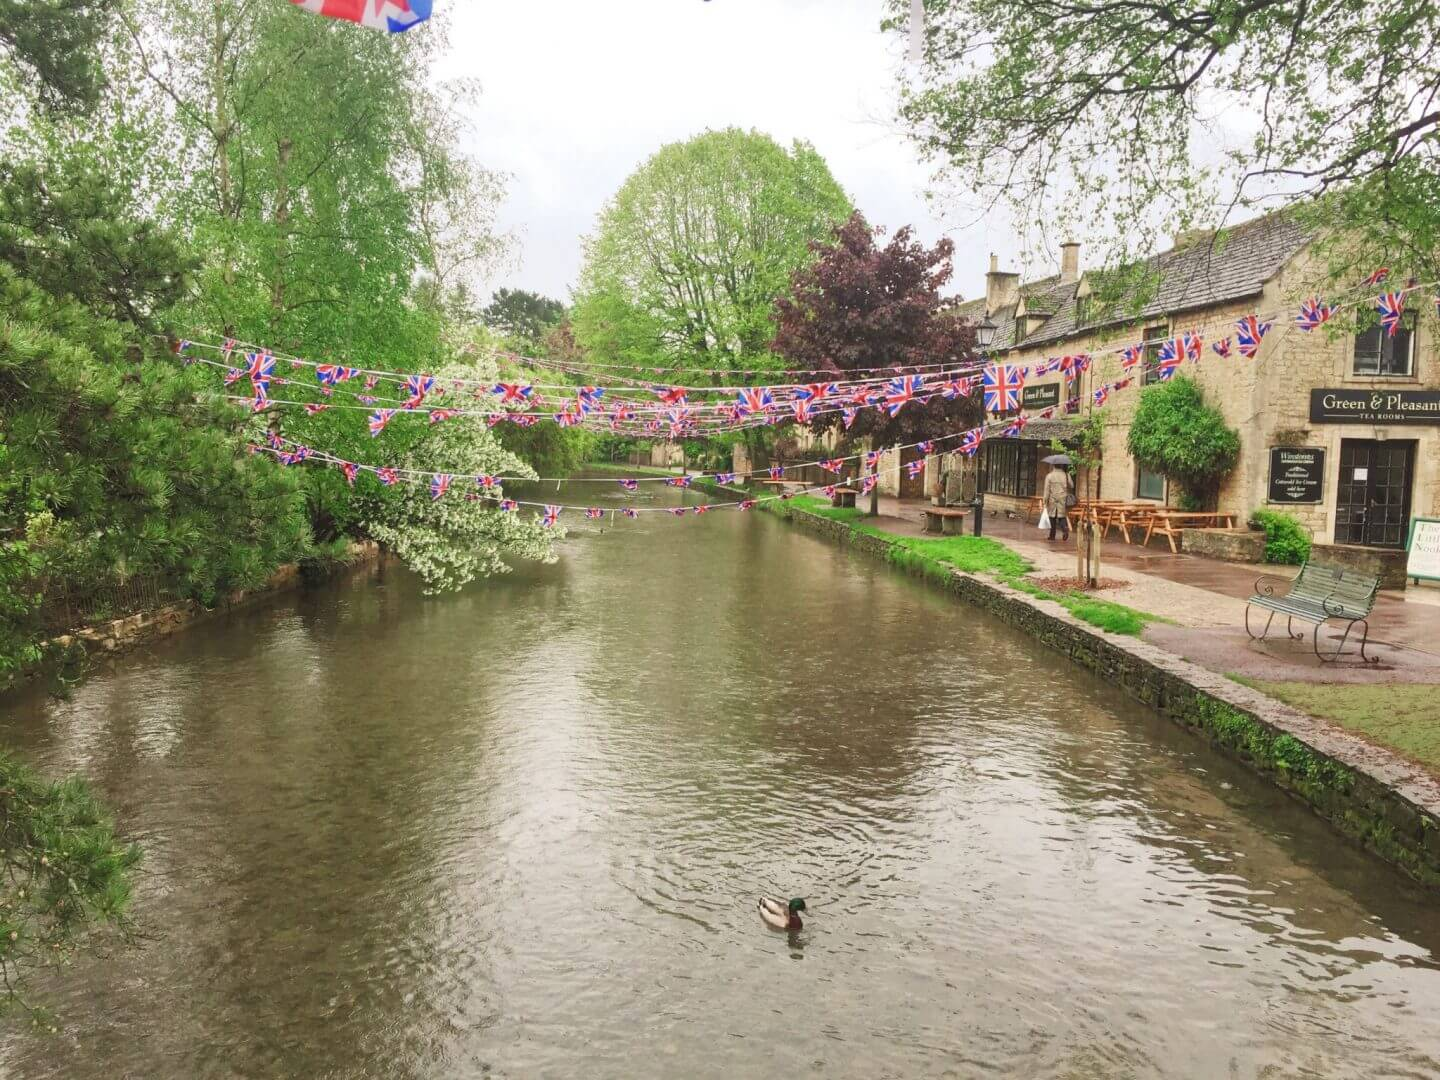 a stream running through the middle of Bourton-on-the-water, with Union Jack Bunting having over. Perfect scenes for a weekend trip to the Cotswolds